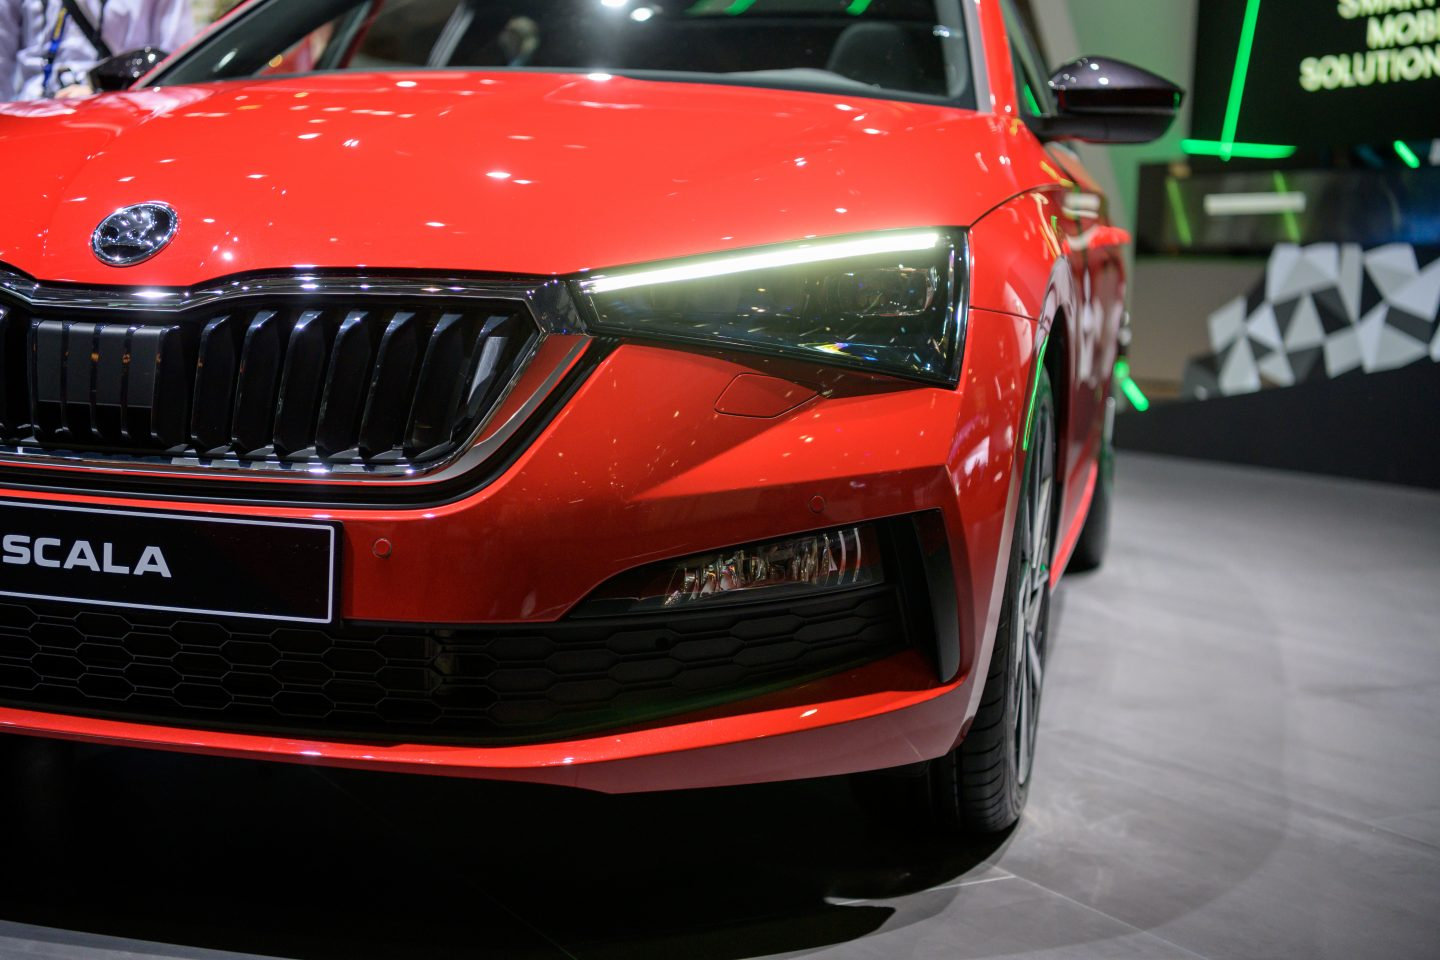 skoda-scala-head-lights-geneva